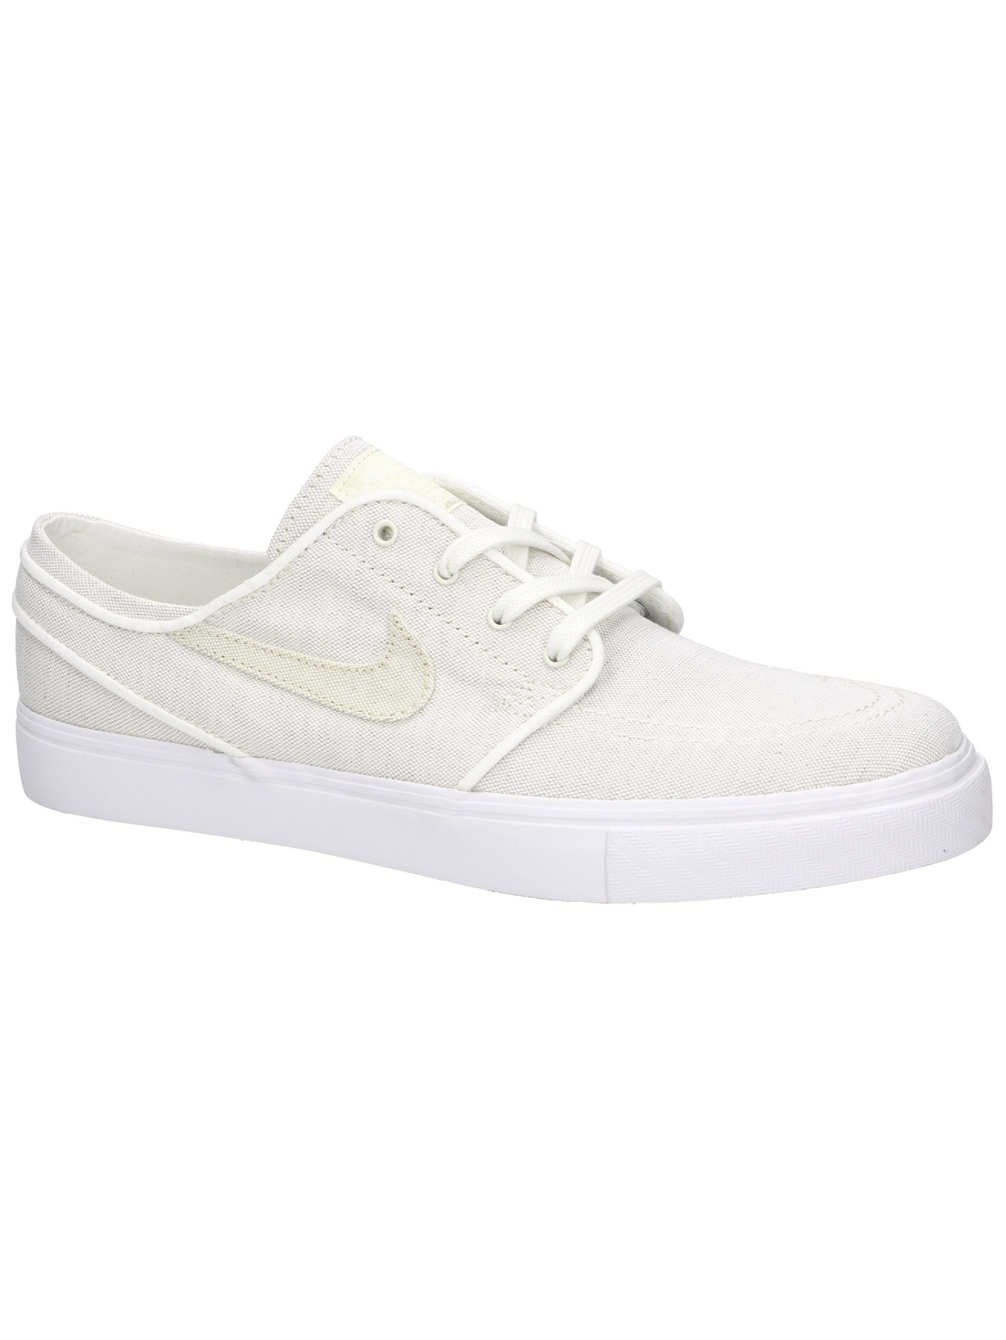 Galleon - Nike Men SB Zoom Stefan Janoski Canvas Deconstructed Skate Shoes  Sail Fossil-Vintage Coral (9.5) d779c4e6ac83b